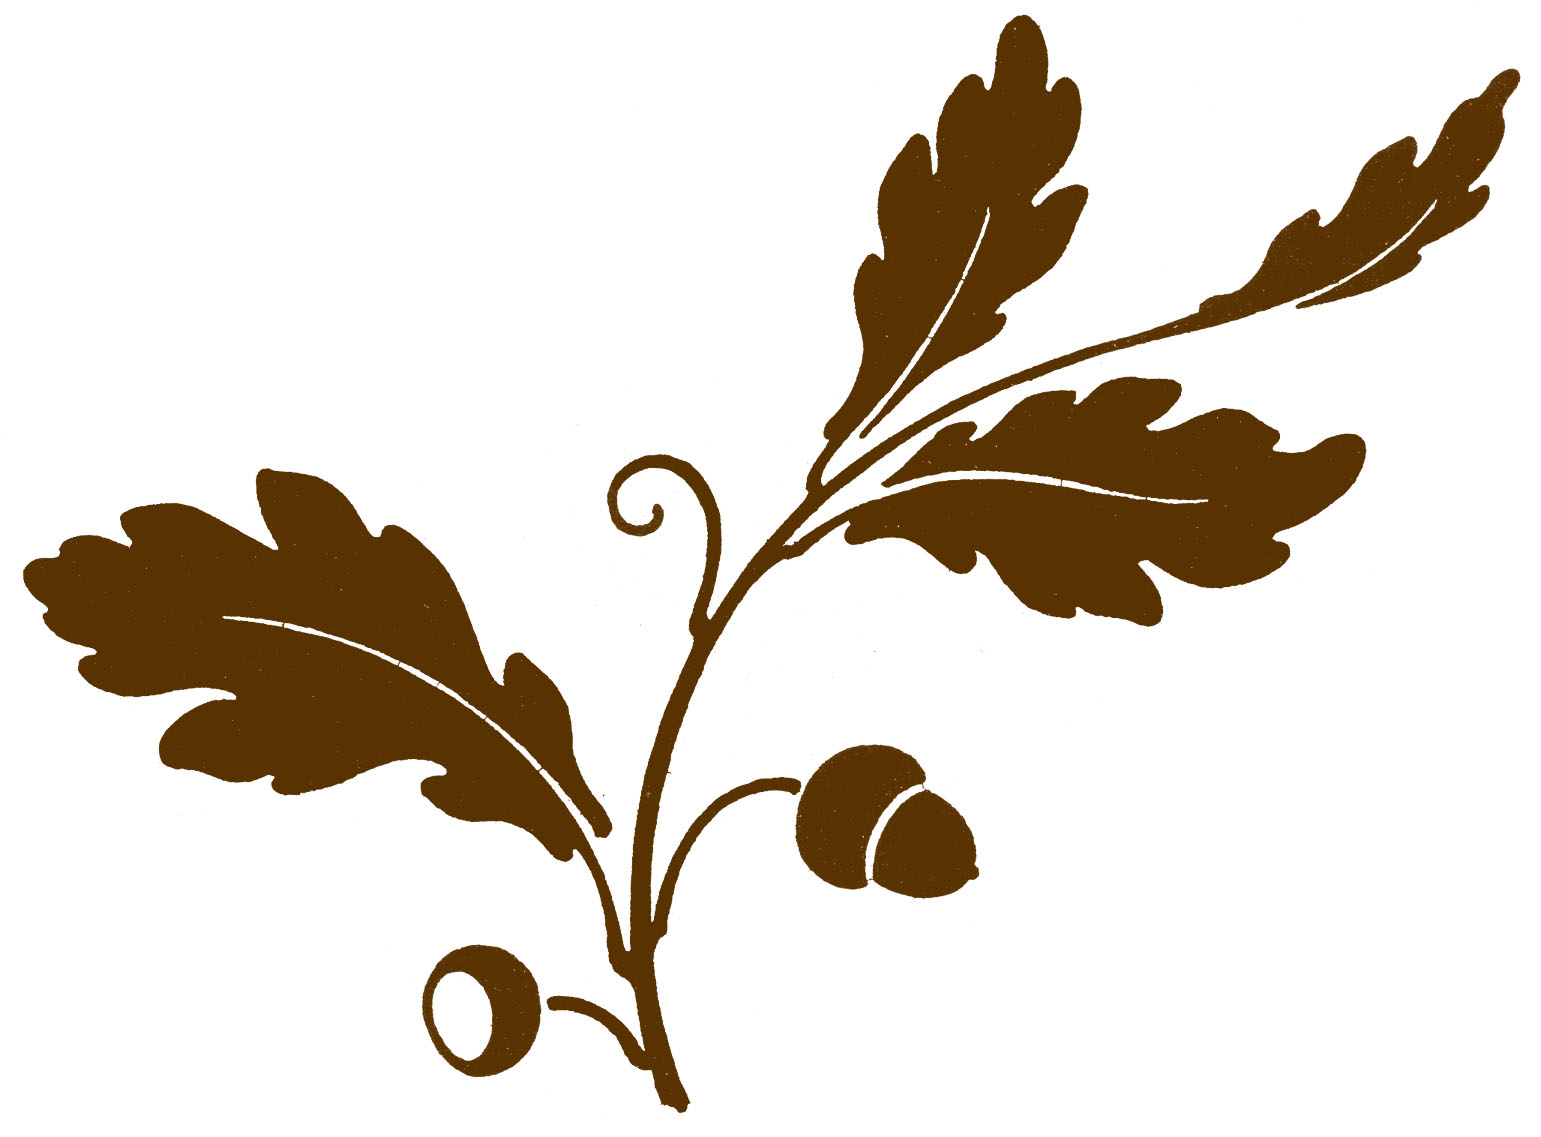 Antique Clip Art   Oak Leaf   Acorns   Silhouette   The Graphics Fairy